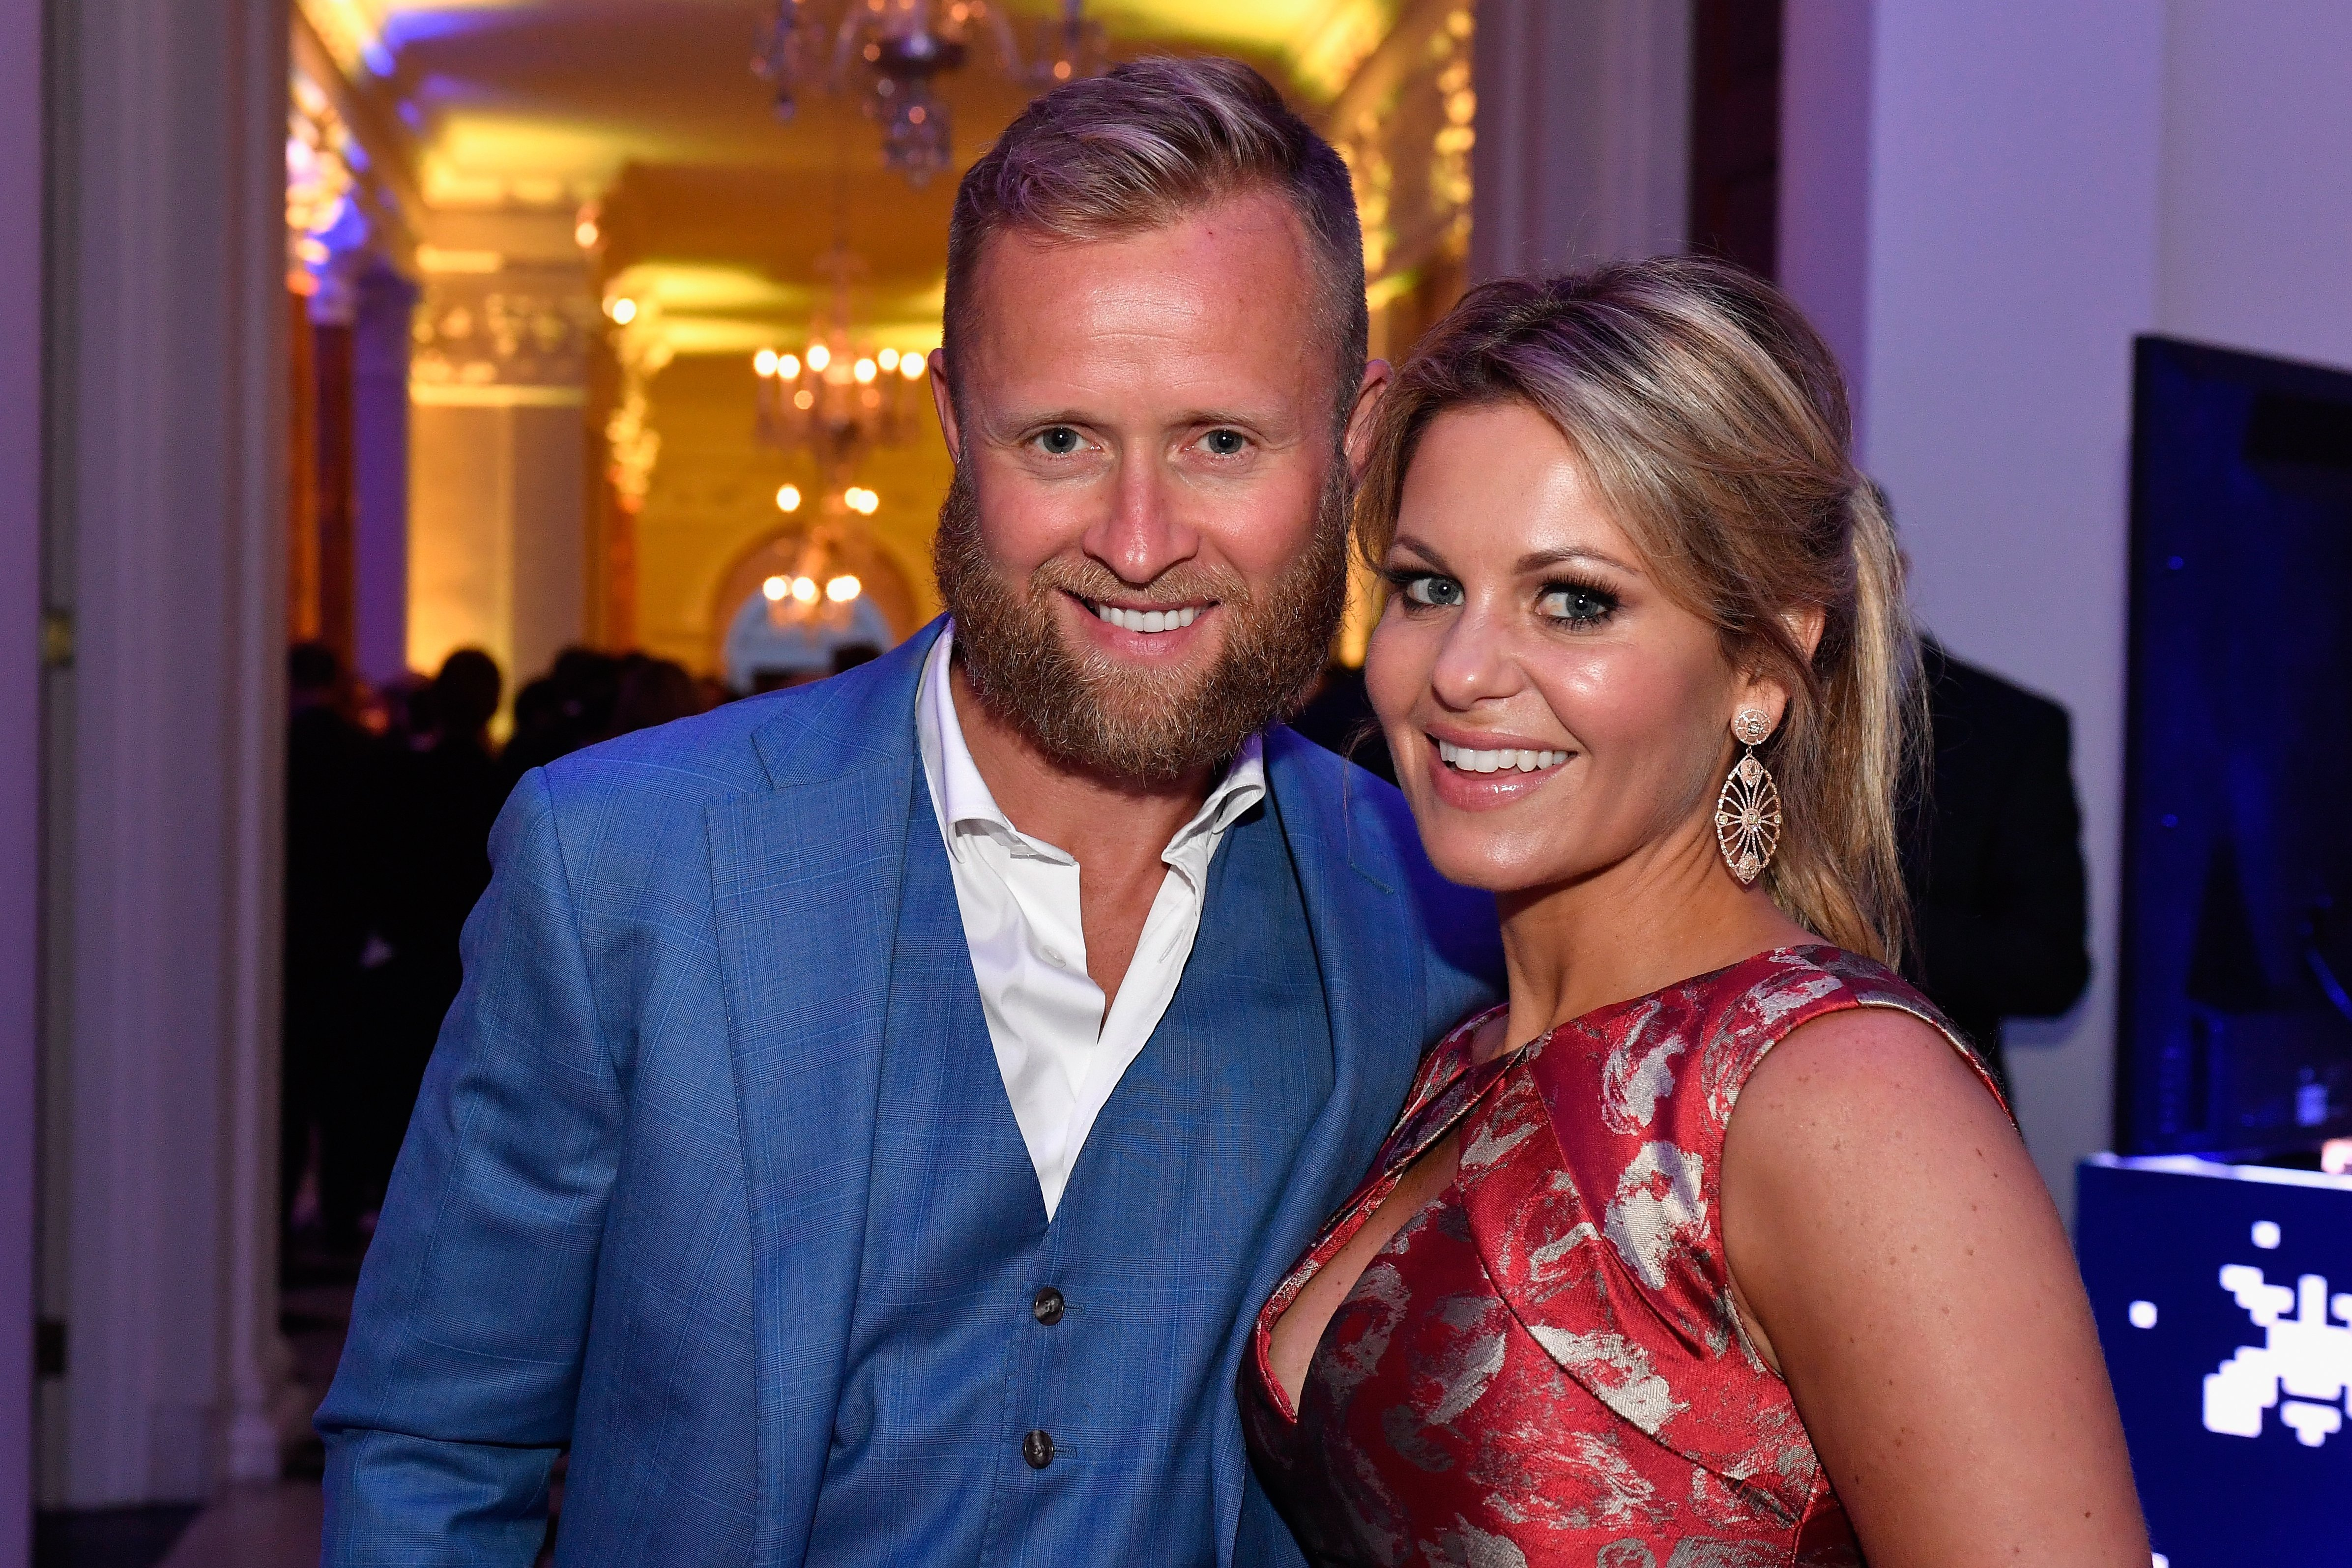 Valeri Bure and actress Candace Cameron-Bure at the Capitol File's WHCD Welcome Reception at British Ambassador's Residence on April 29, 2016 | Photo: GettyImages